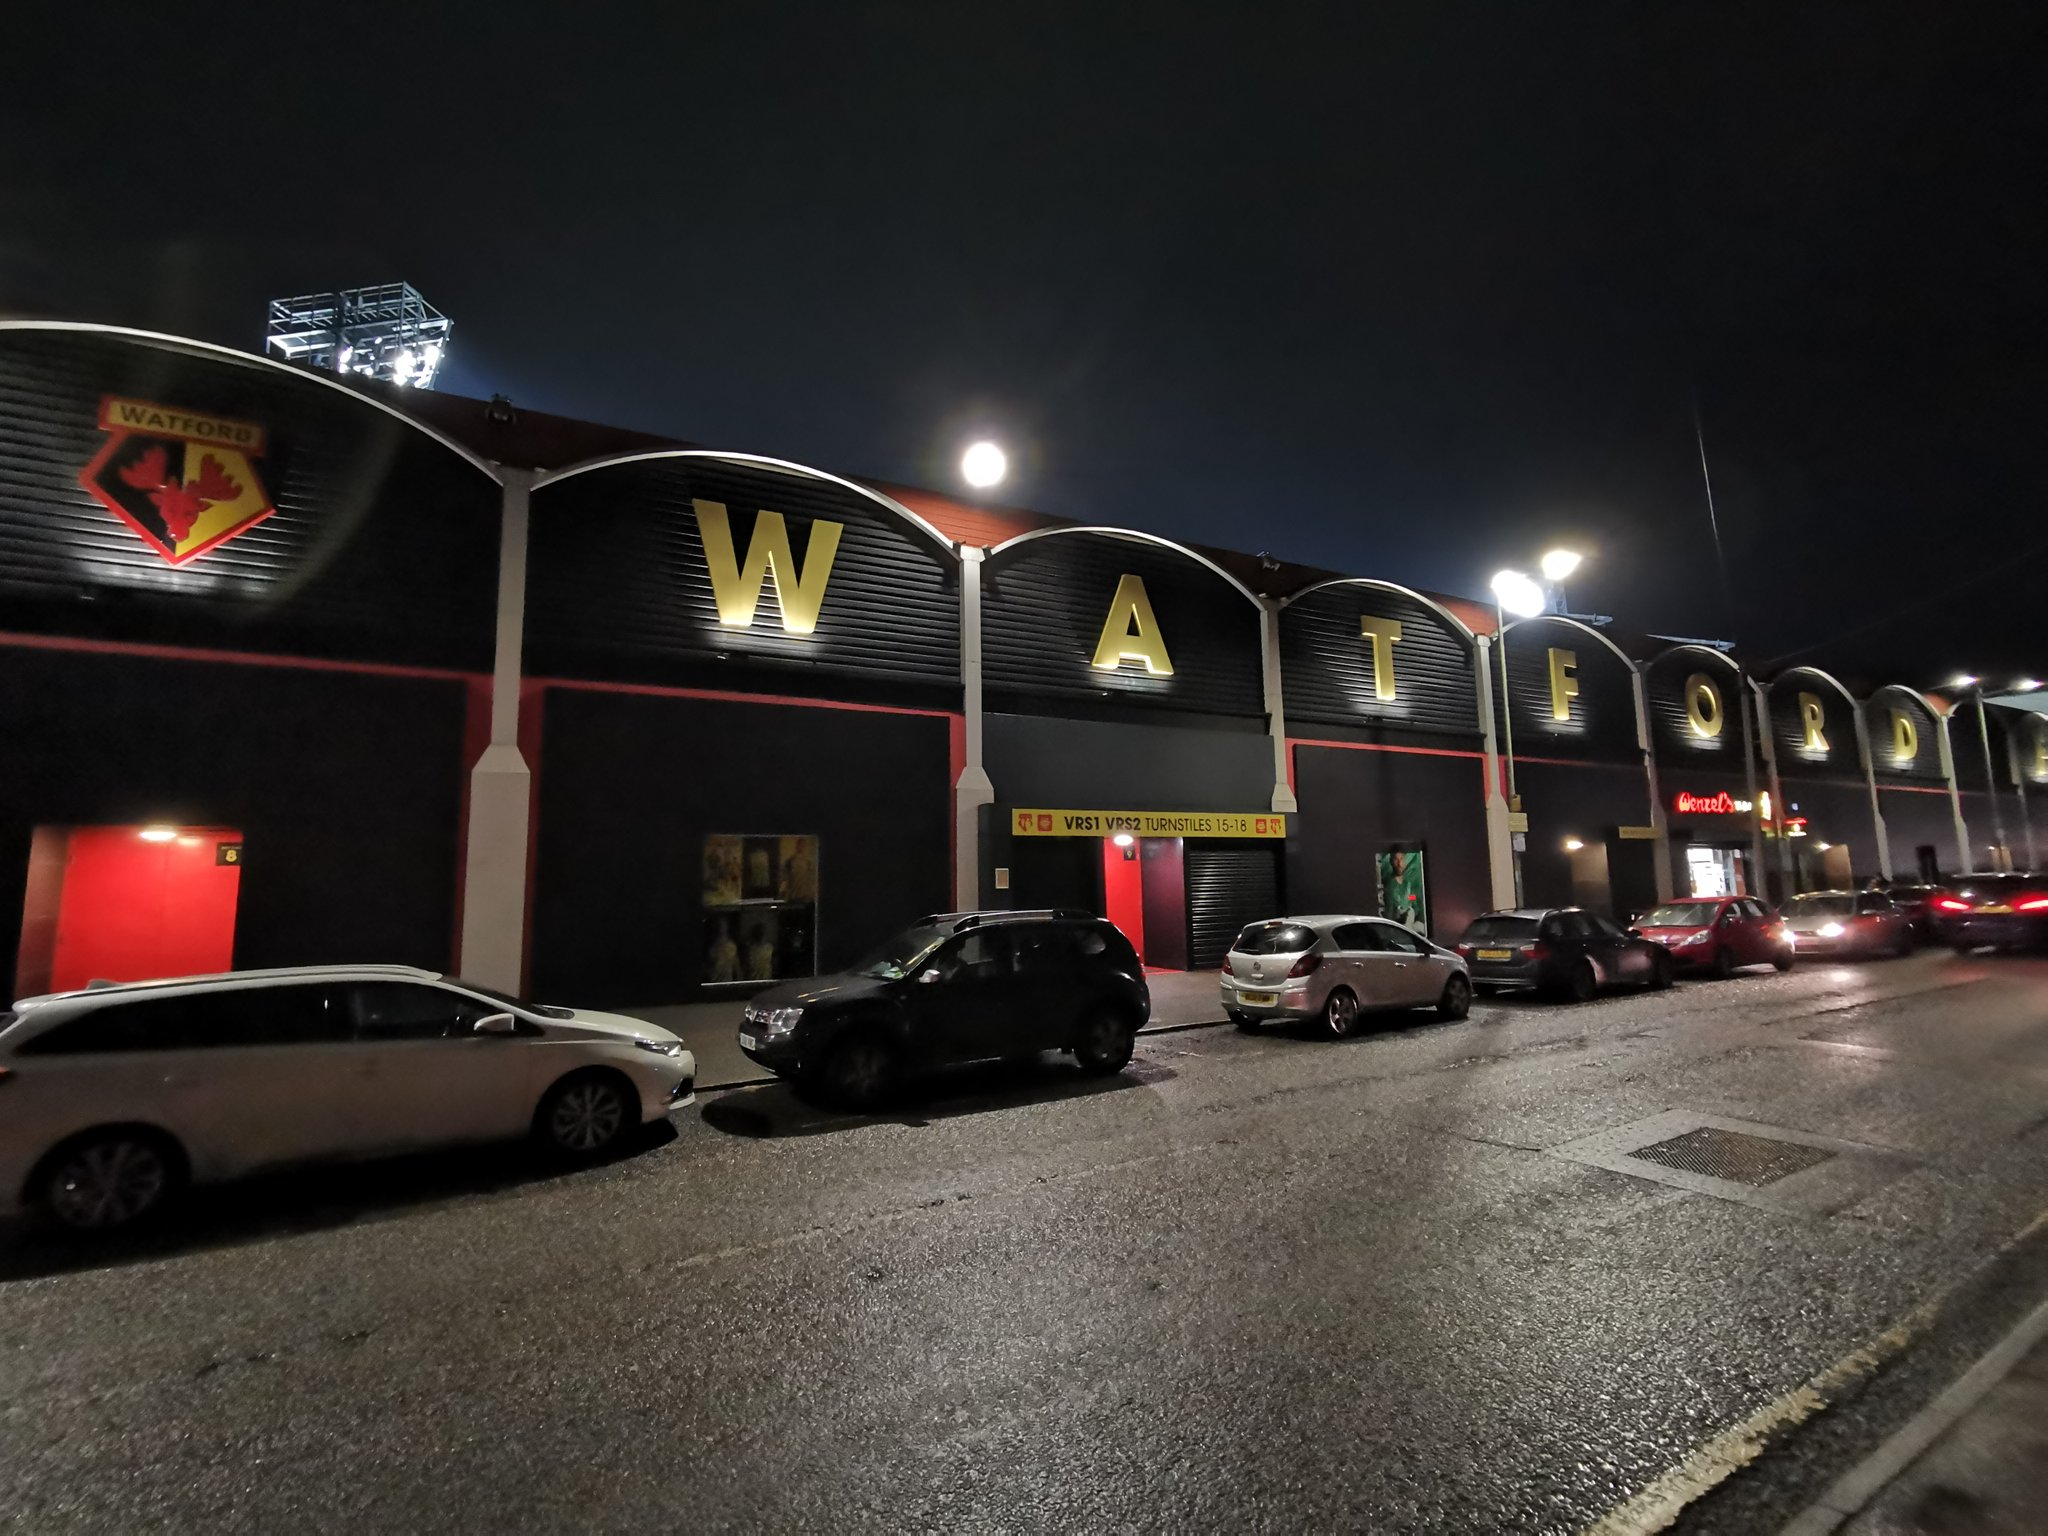 Live updates from Watford's home tie against Barnsley